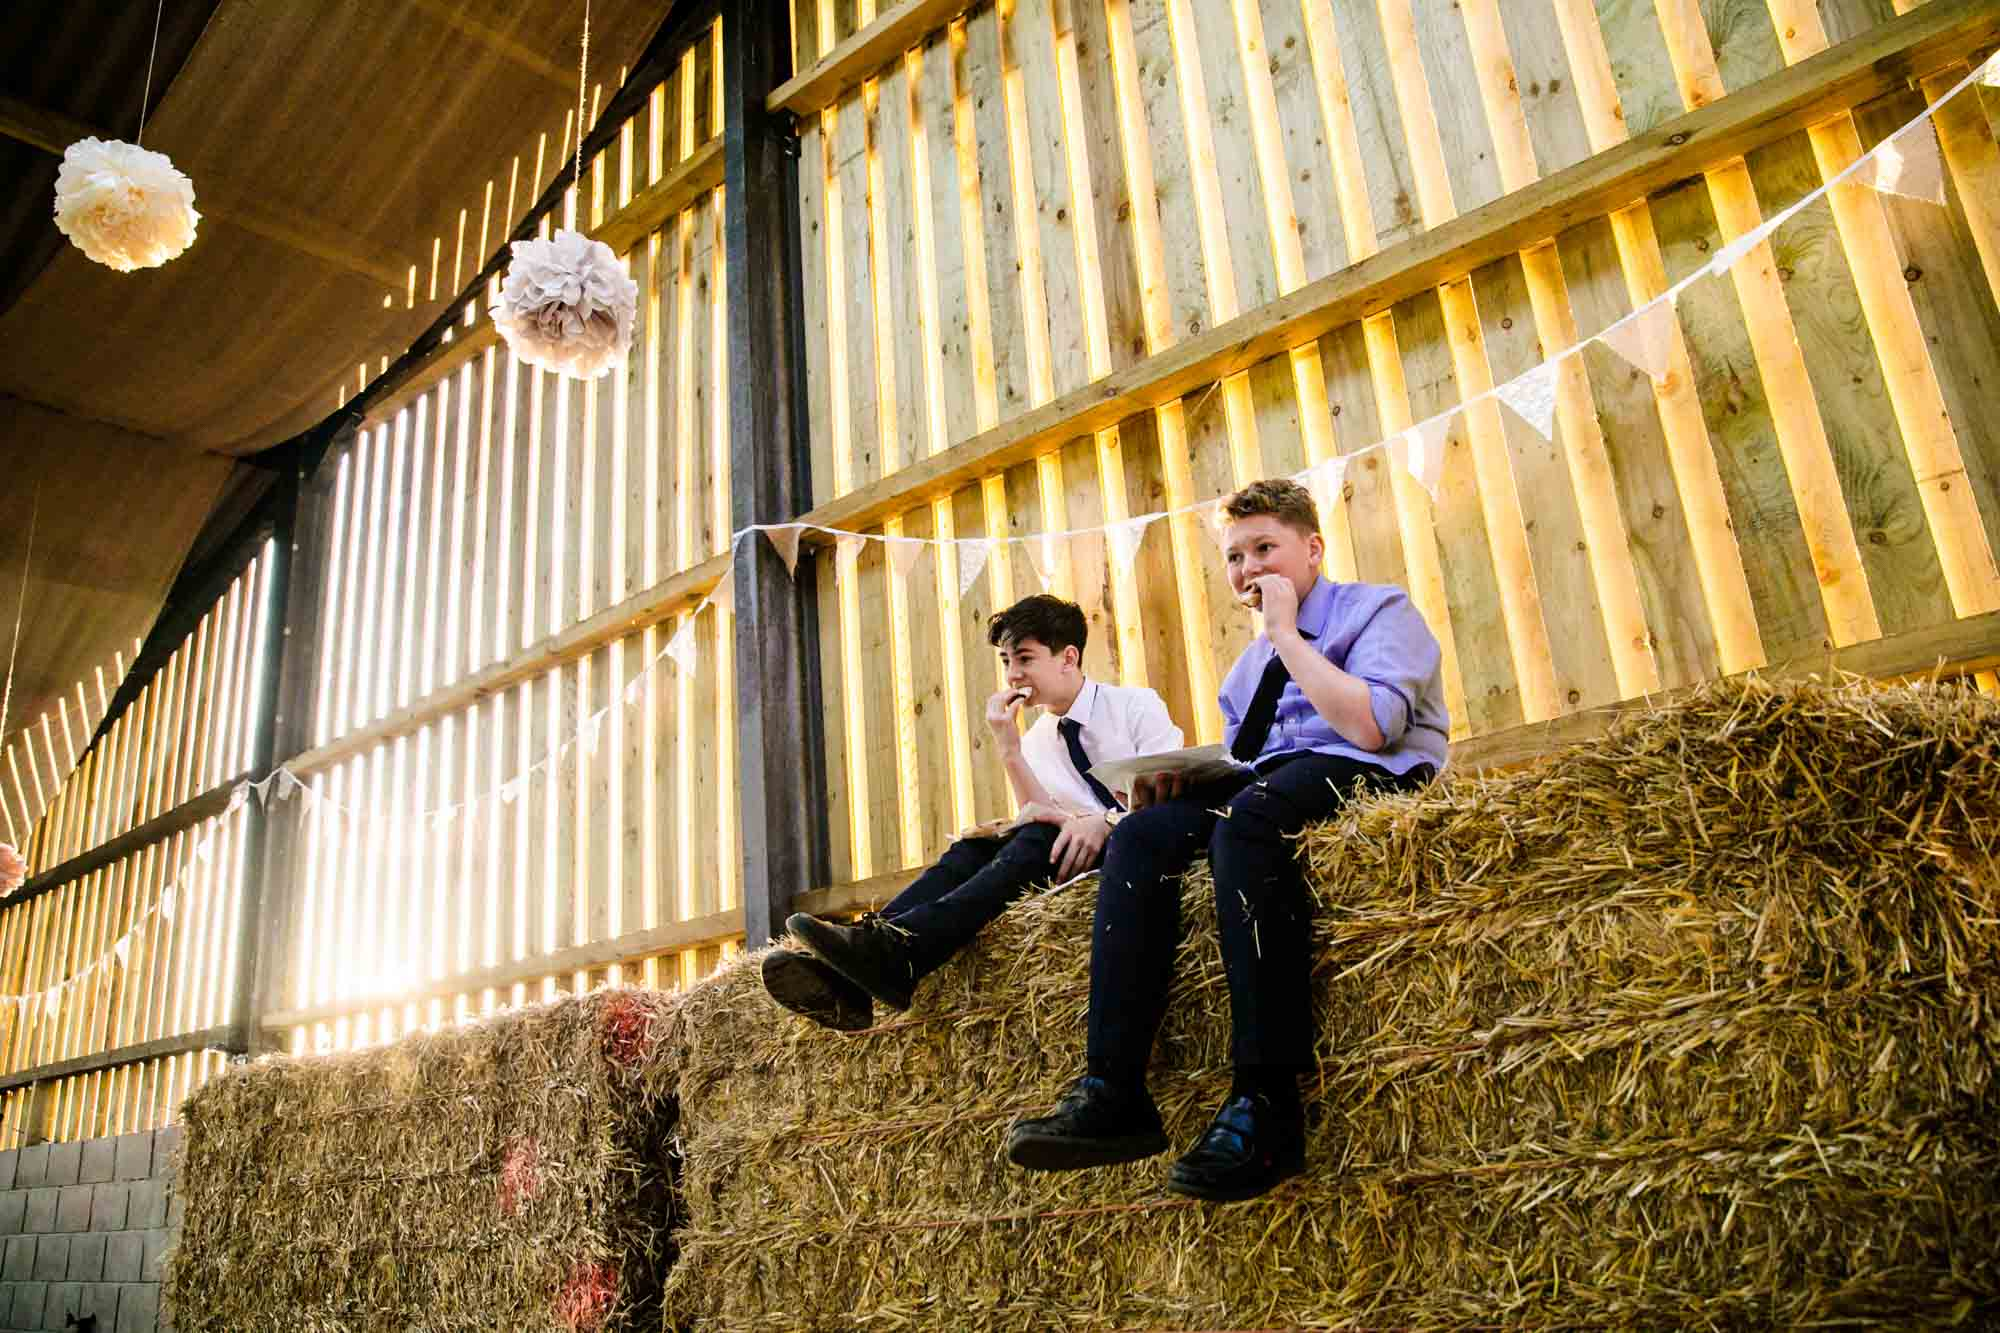 Creative Wedding Photos Thornsett Fields Farm